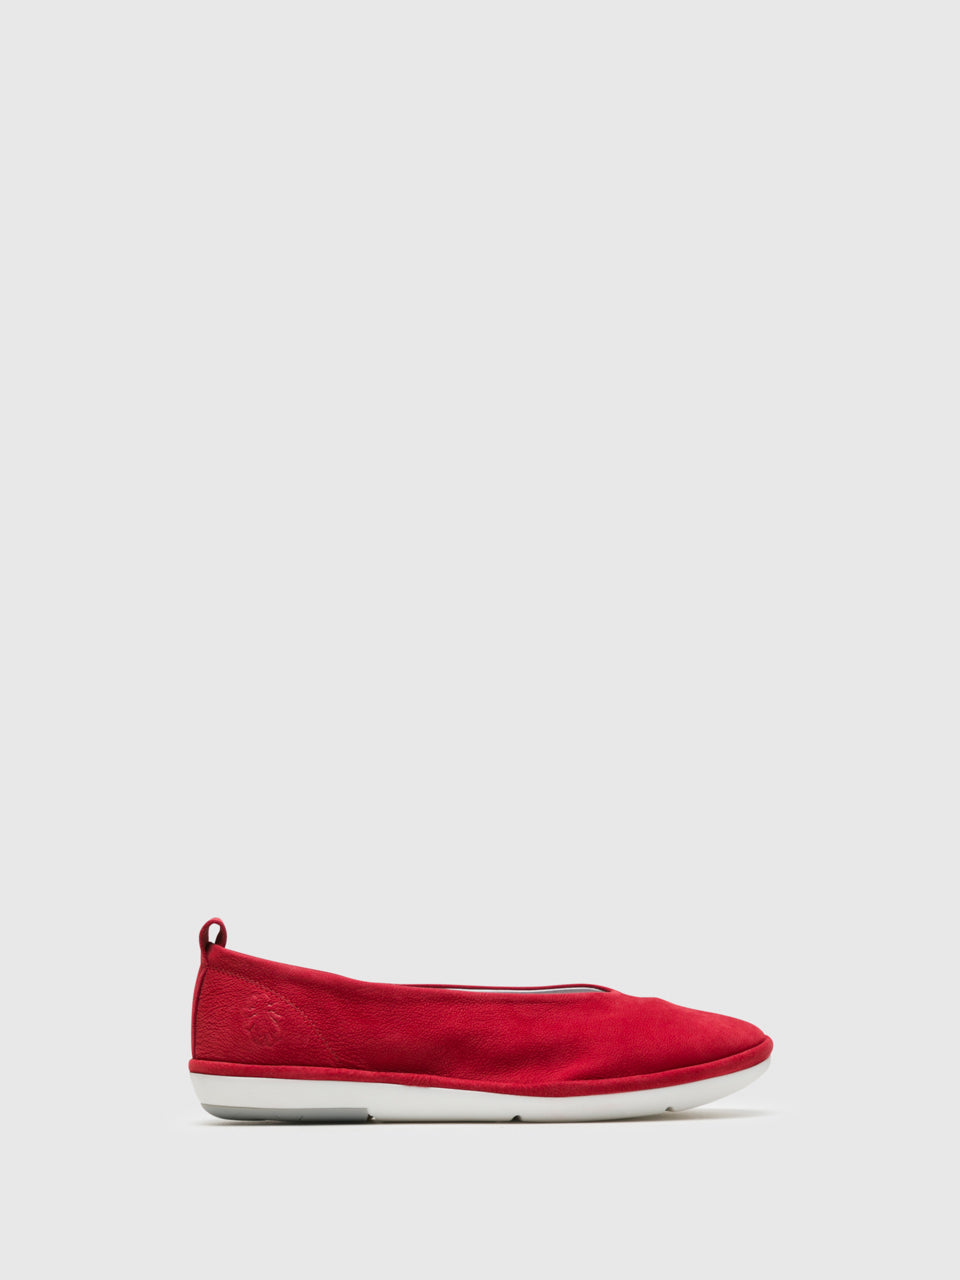 Fly London Ballerinas mit eckiger Kappe in Rot